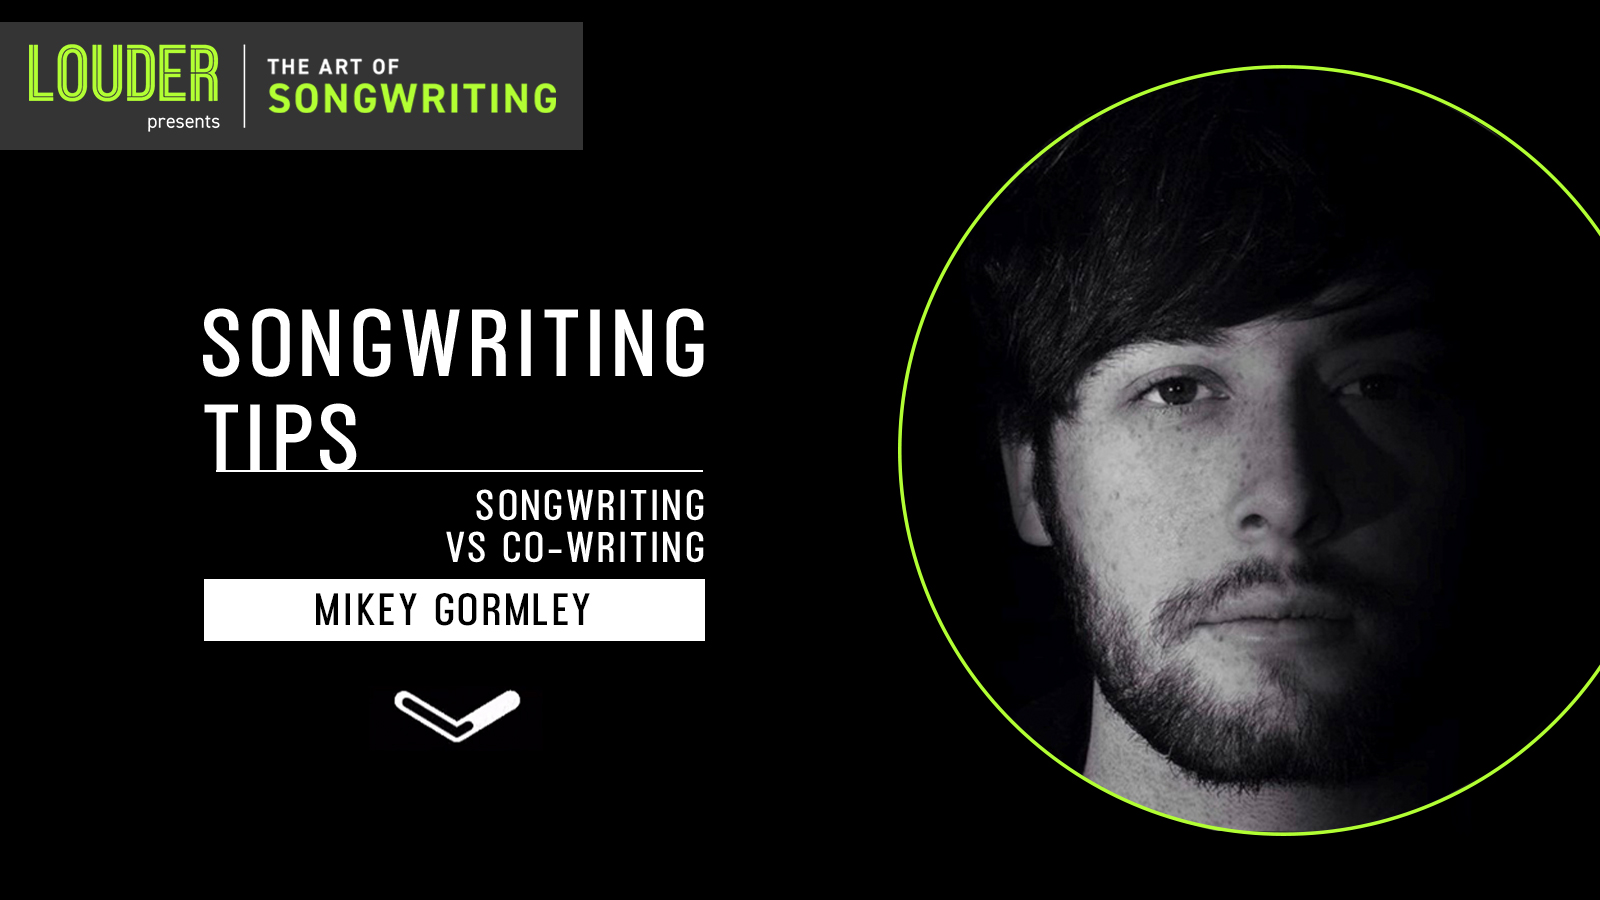 What's the Difference between a Songwriter and Topliner?